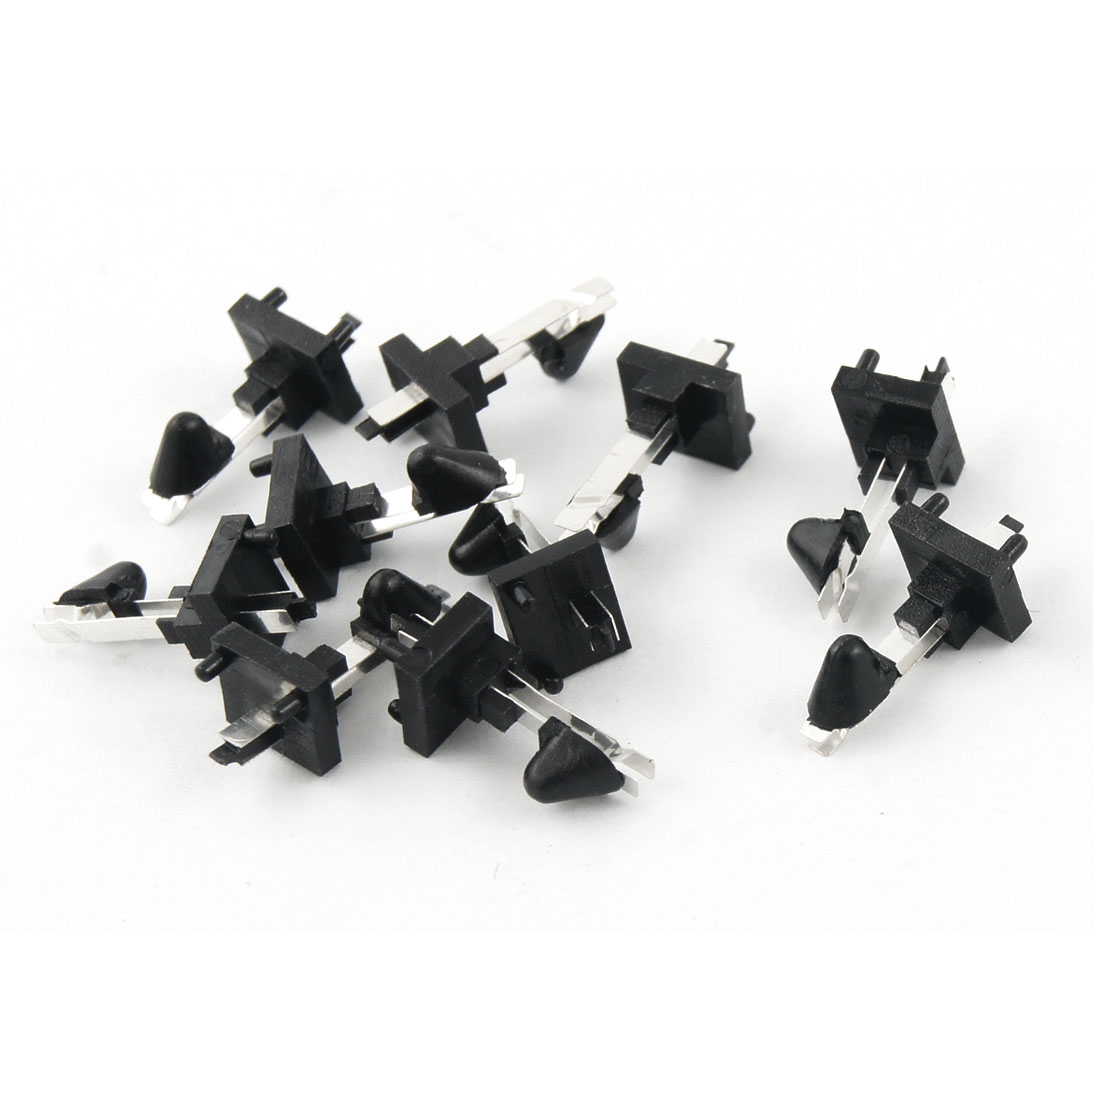 10 Pcs CS-068-2 DC 16V 1A 1P1T Leaf Switch for Electric Toy